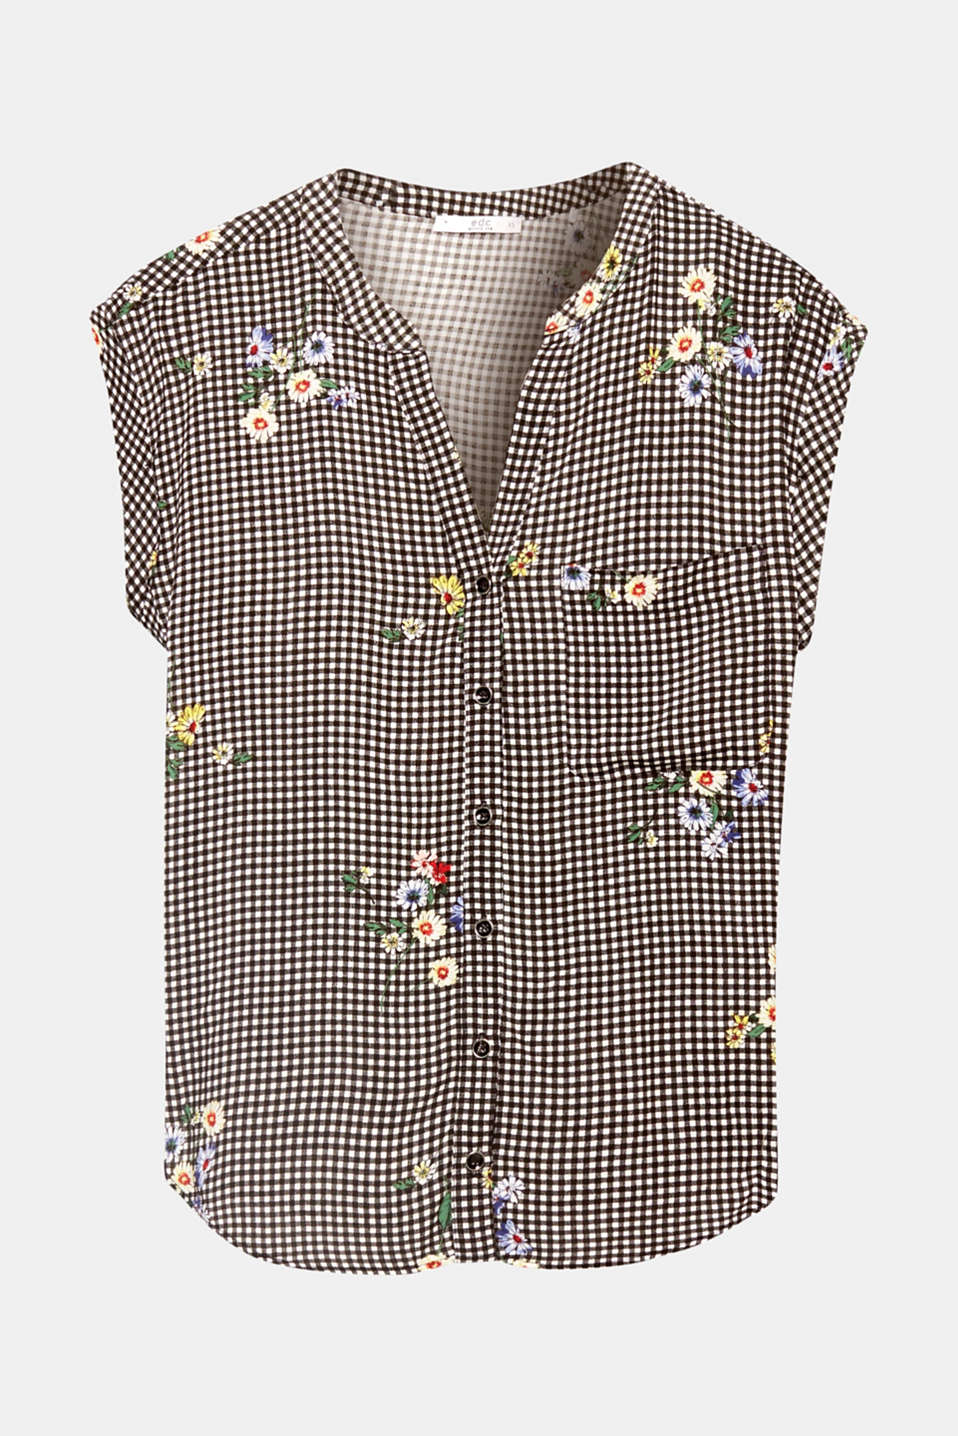 Gingham check meets dainty flowers! This fine blouse top made of soft viscose combines two patterns in a trendy style.